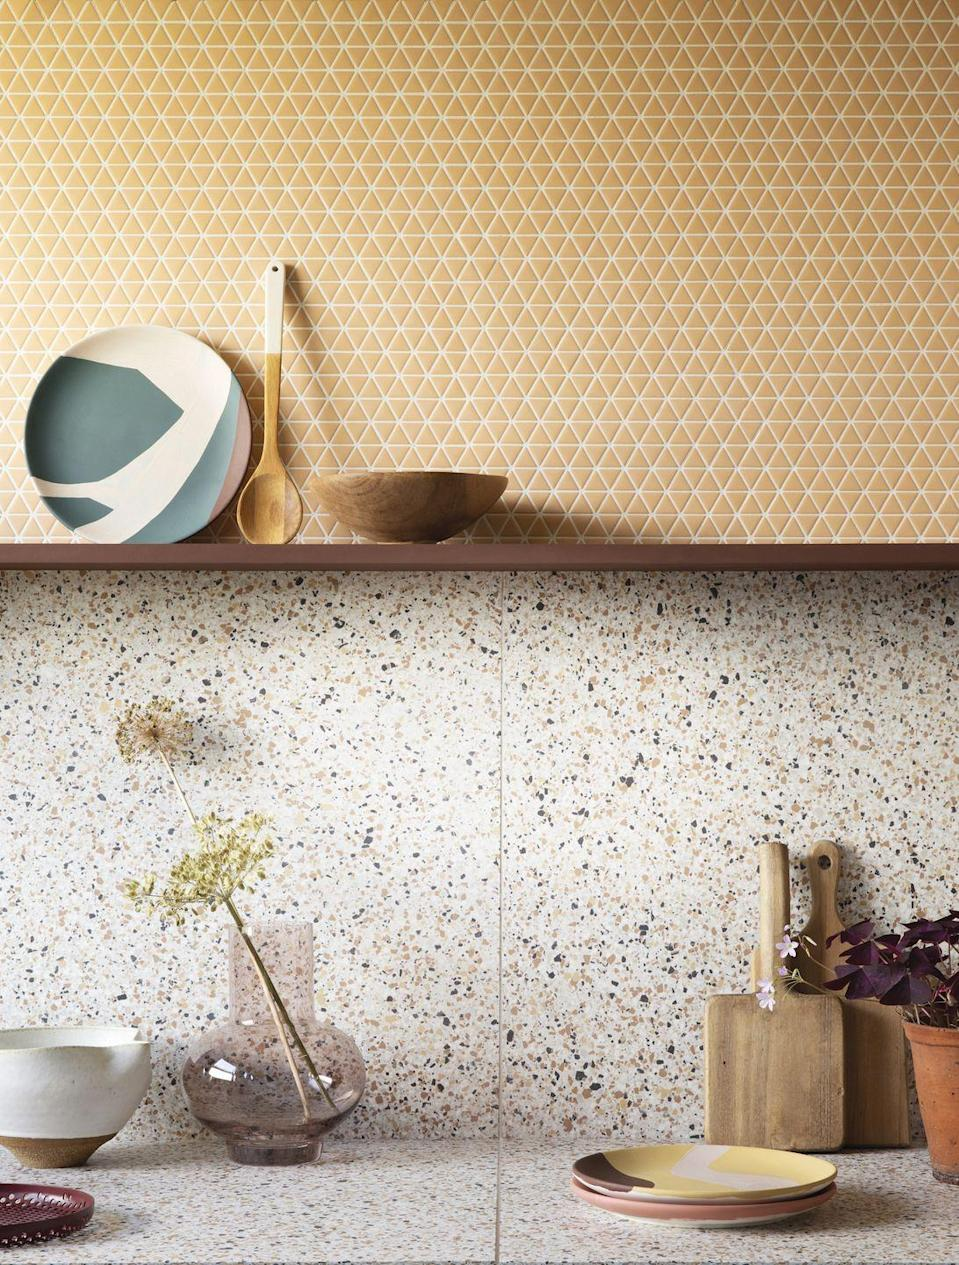 """<p>New tiles can make a huge difference. As well as thinking about colour and pattern, be creative about where and how you place them. Consider adding a contrasting style above a display shelf or making a <a href=""""https://www.housebeautiful.com/uk/house-beautiful-collections/g34526670/kitchen-glass-splashbacks-range/"""" rel=""""nofollow noopener"""" target=""""_blank"""" data-ylk=""""slk:feature splashback"""" class=""""link rapid-noclick-resp"""">feature splashback</a> with decorative designs.</p><p>Pictured: Confiserie recycled glass mosaic tiles in Sorbet; shelf painted in Brown eggshell; Trousdale Aniston Terrazzo tiles, all <a href=""""https://www.claybrookstudio.co.uk/"""" rel=""""nofollow noopener"""" target=""""_blank"""" data-ylk=""""slk:Claybrook"""" class=""""link rapid-noclick-resp"""">Claybrook</a></p>"""